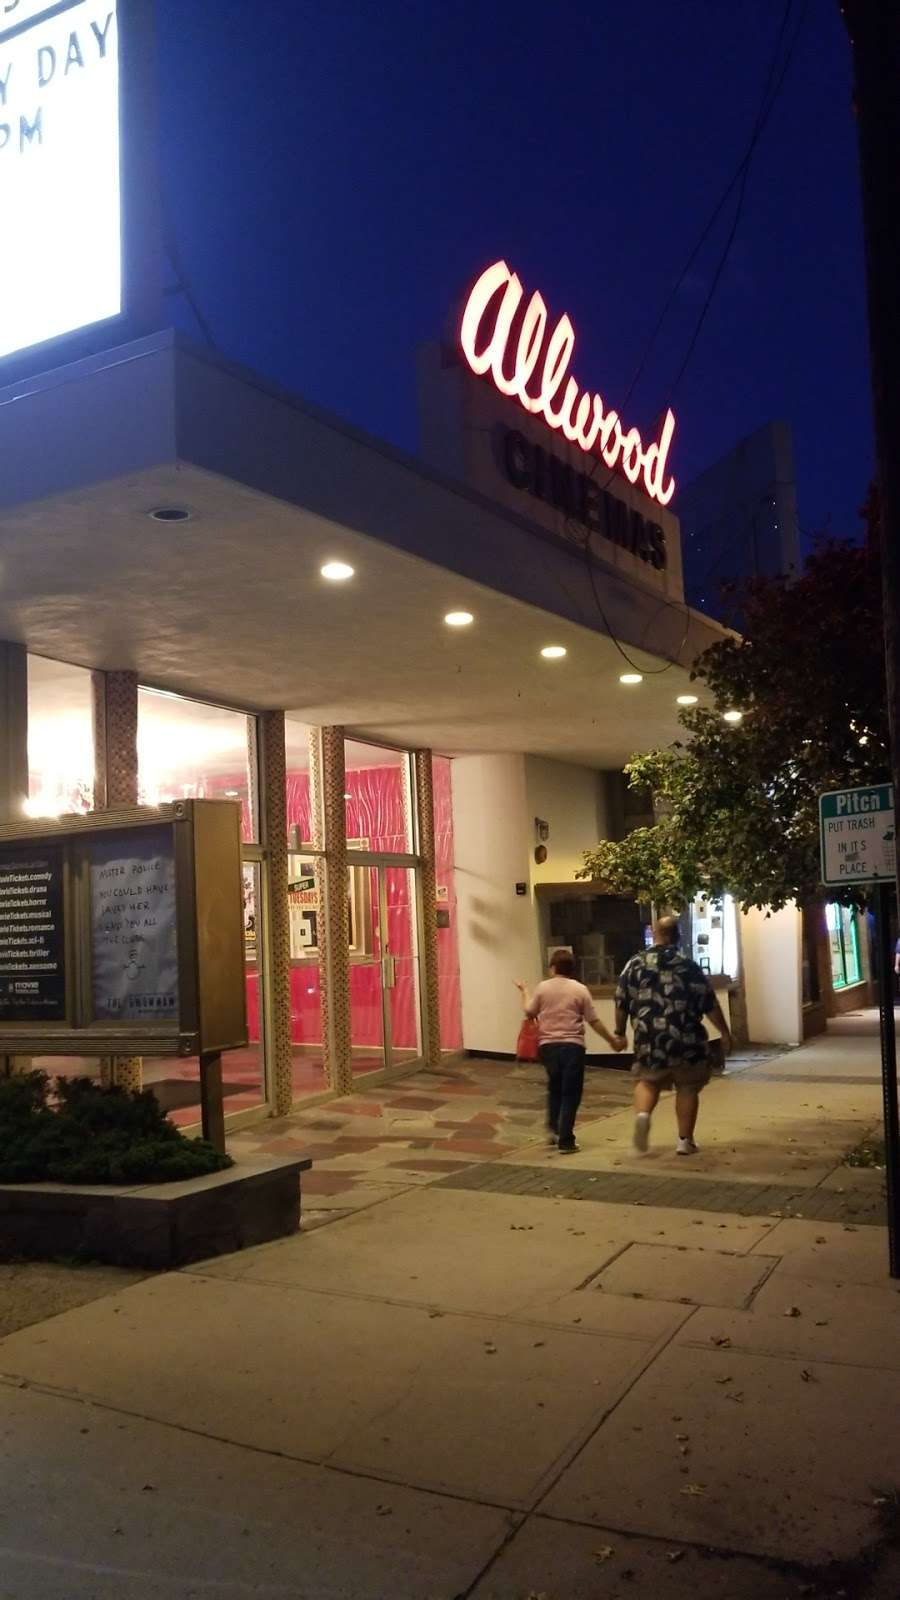 Allwood Theater in Clifton. - movie theater  | Photo 10 of 10 | Address: 96 Market St, Clifton, NJ 07012, USA | Phone: (973) 778-9774